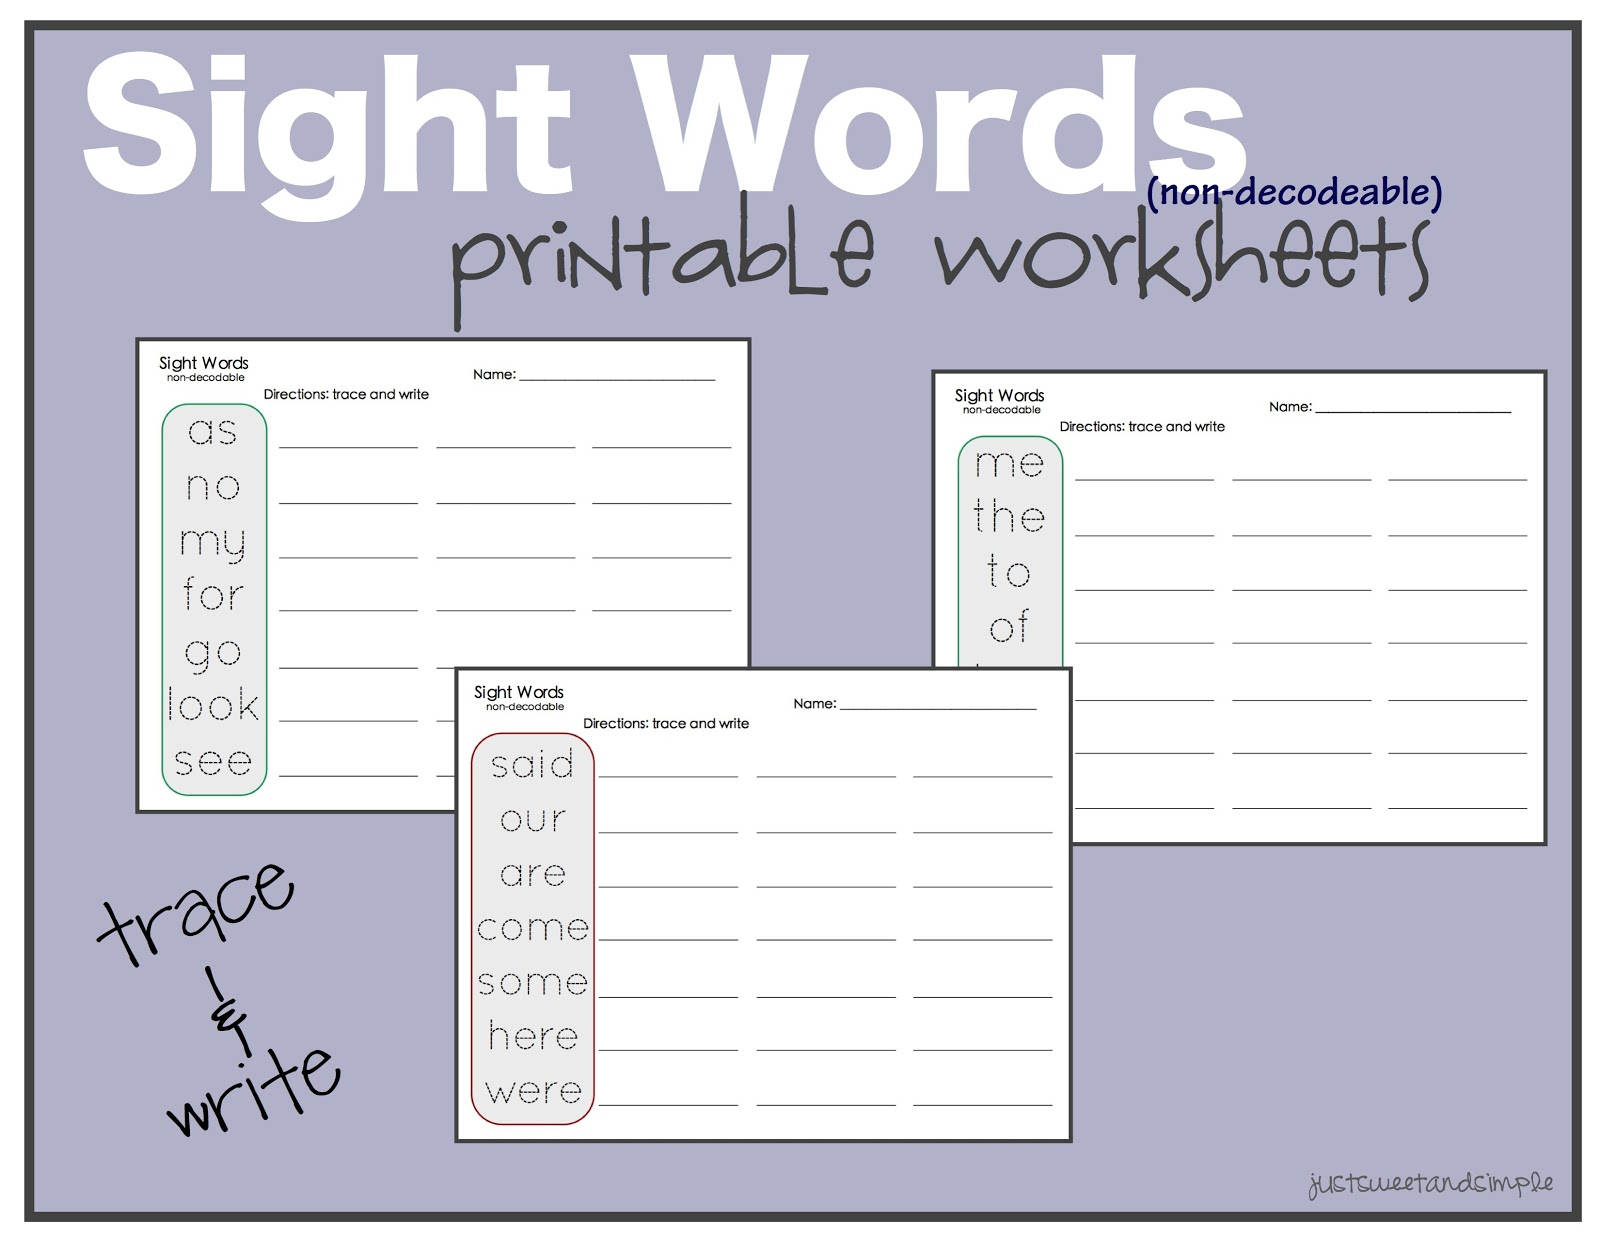 free preschool  Word word Sweet and Practice: Sight worksheets sight Worksheets Preschool printable Practice Simple: